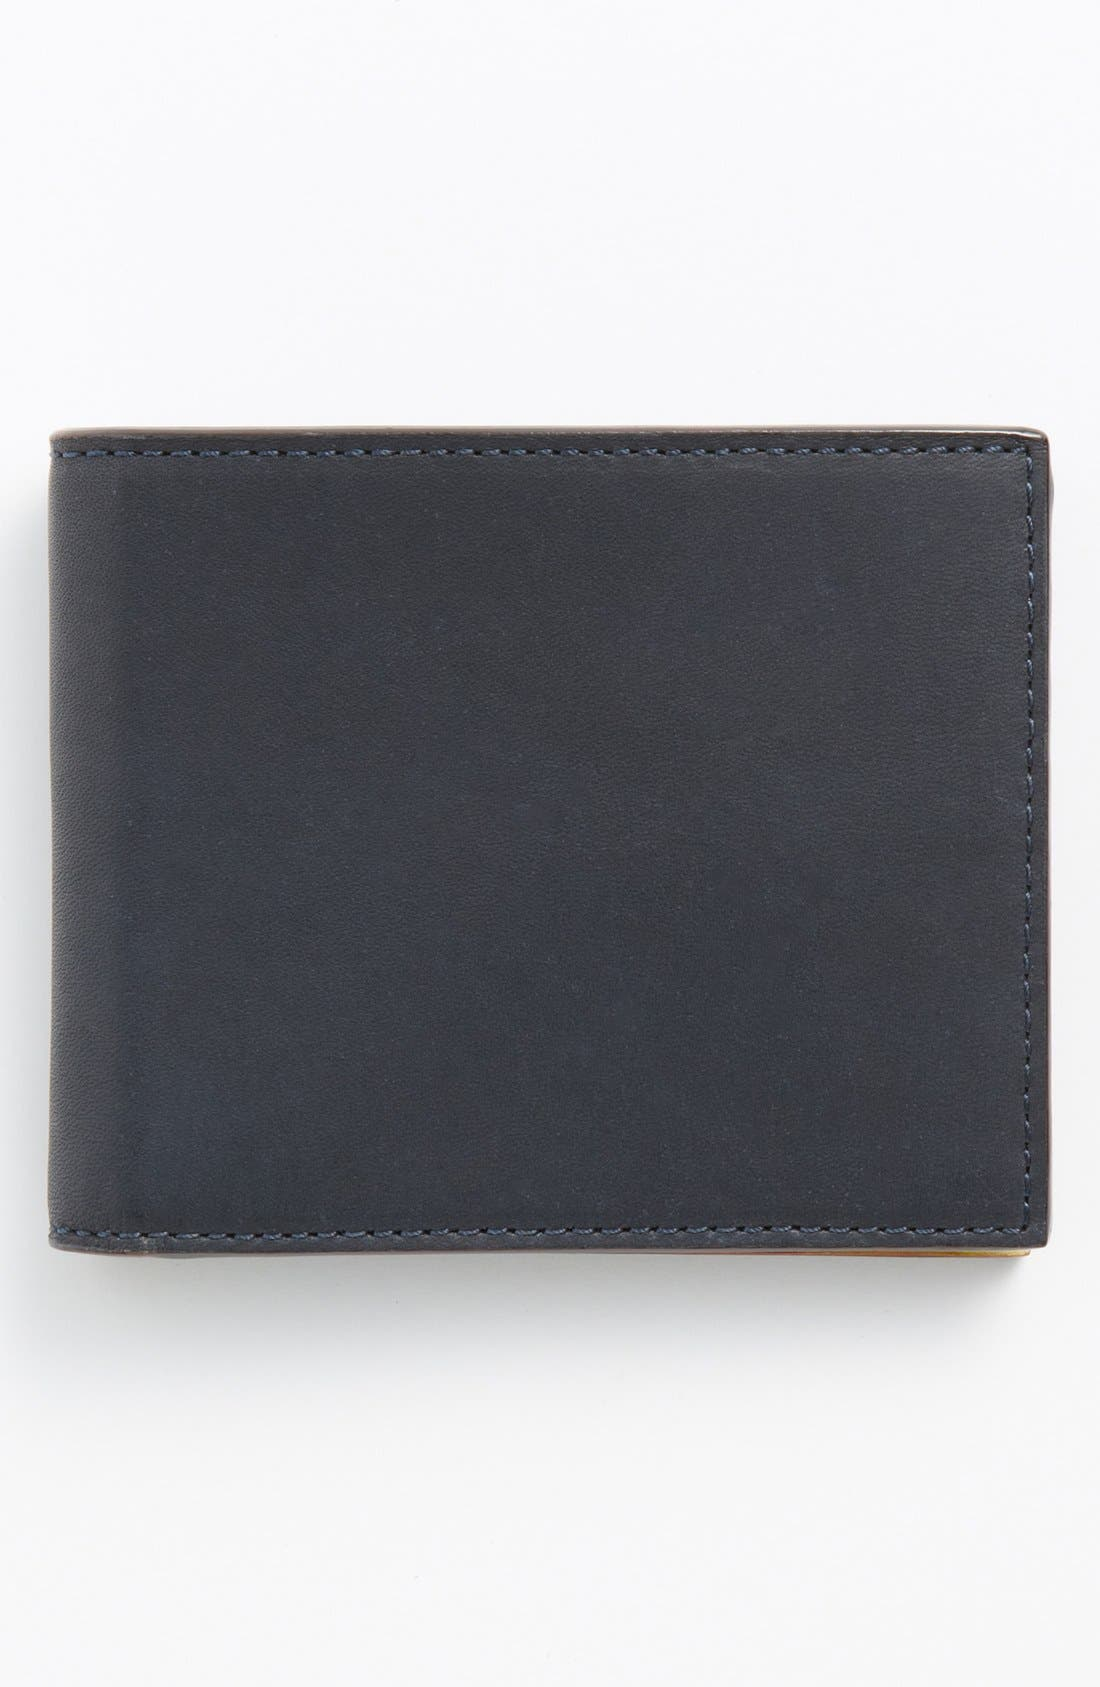 JACK SPADE,                             Wallet,                             Alternate thumbnail 3, color,                             300